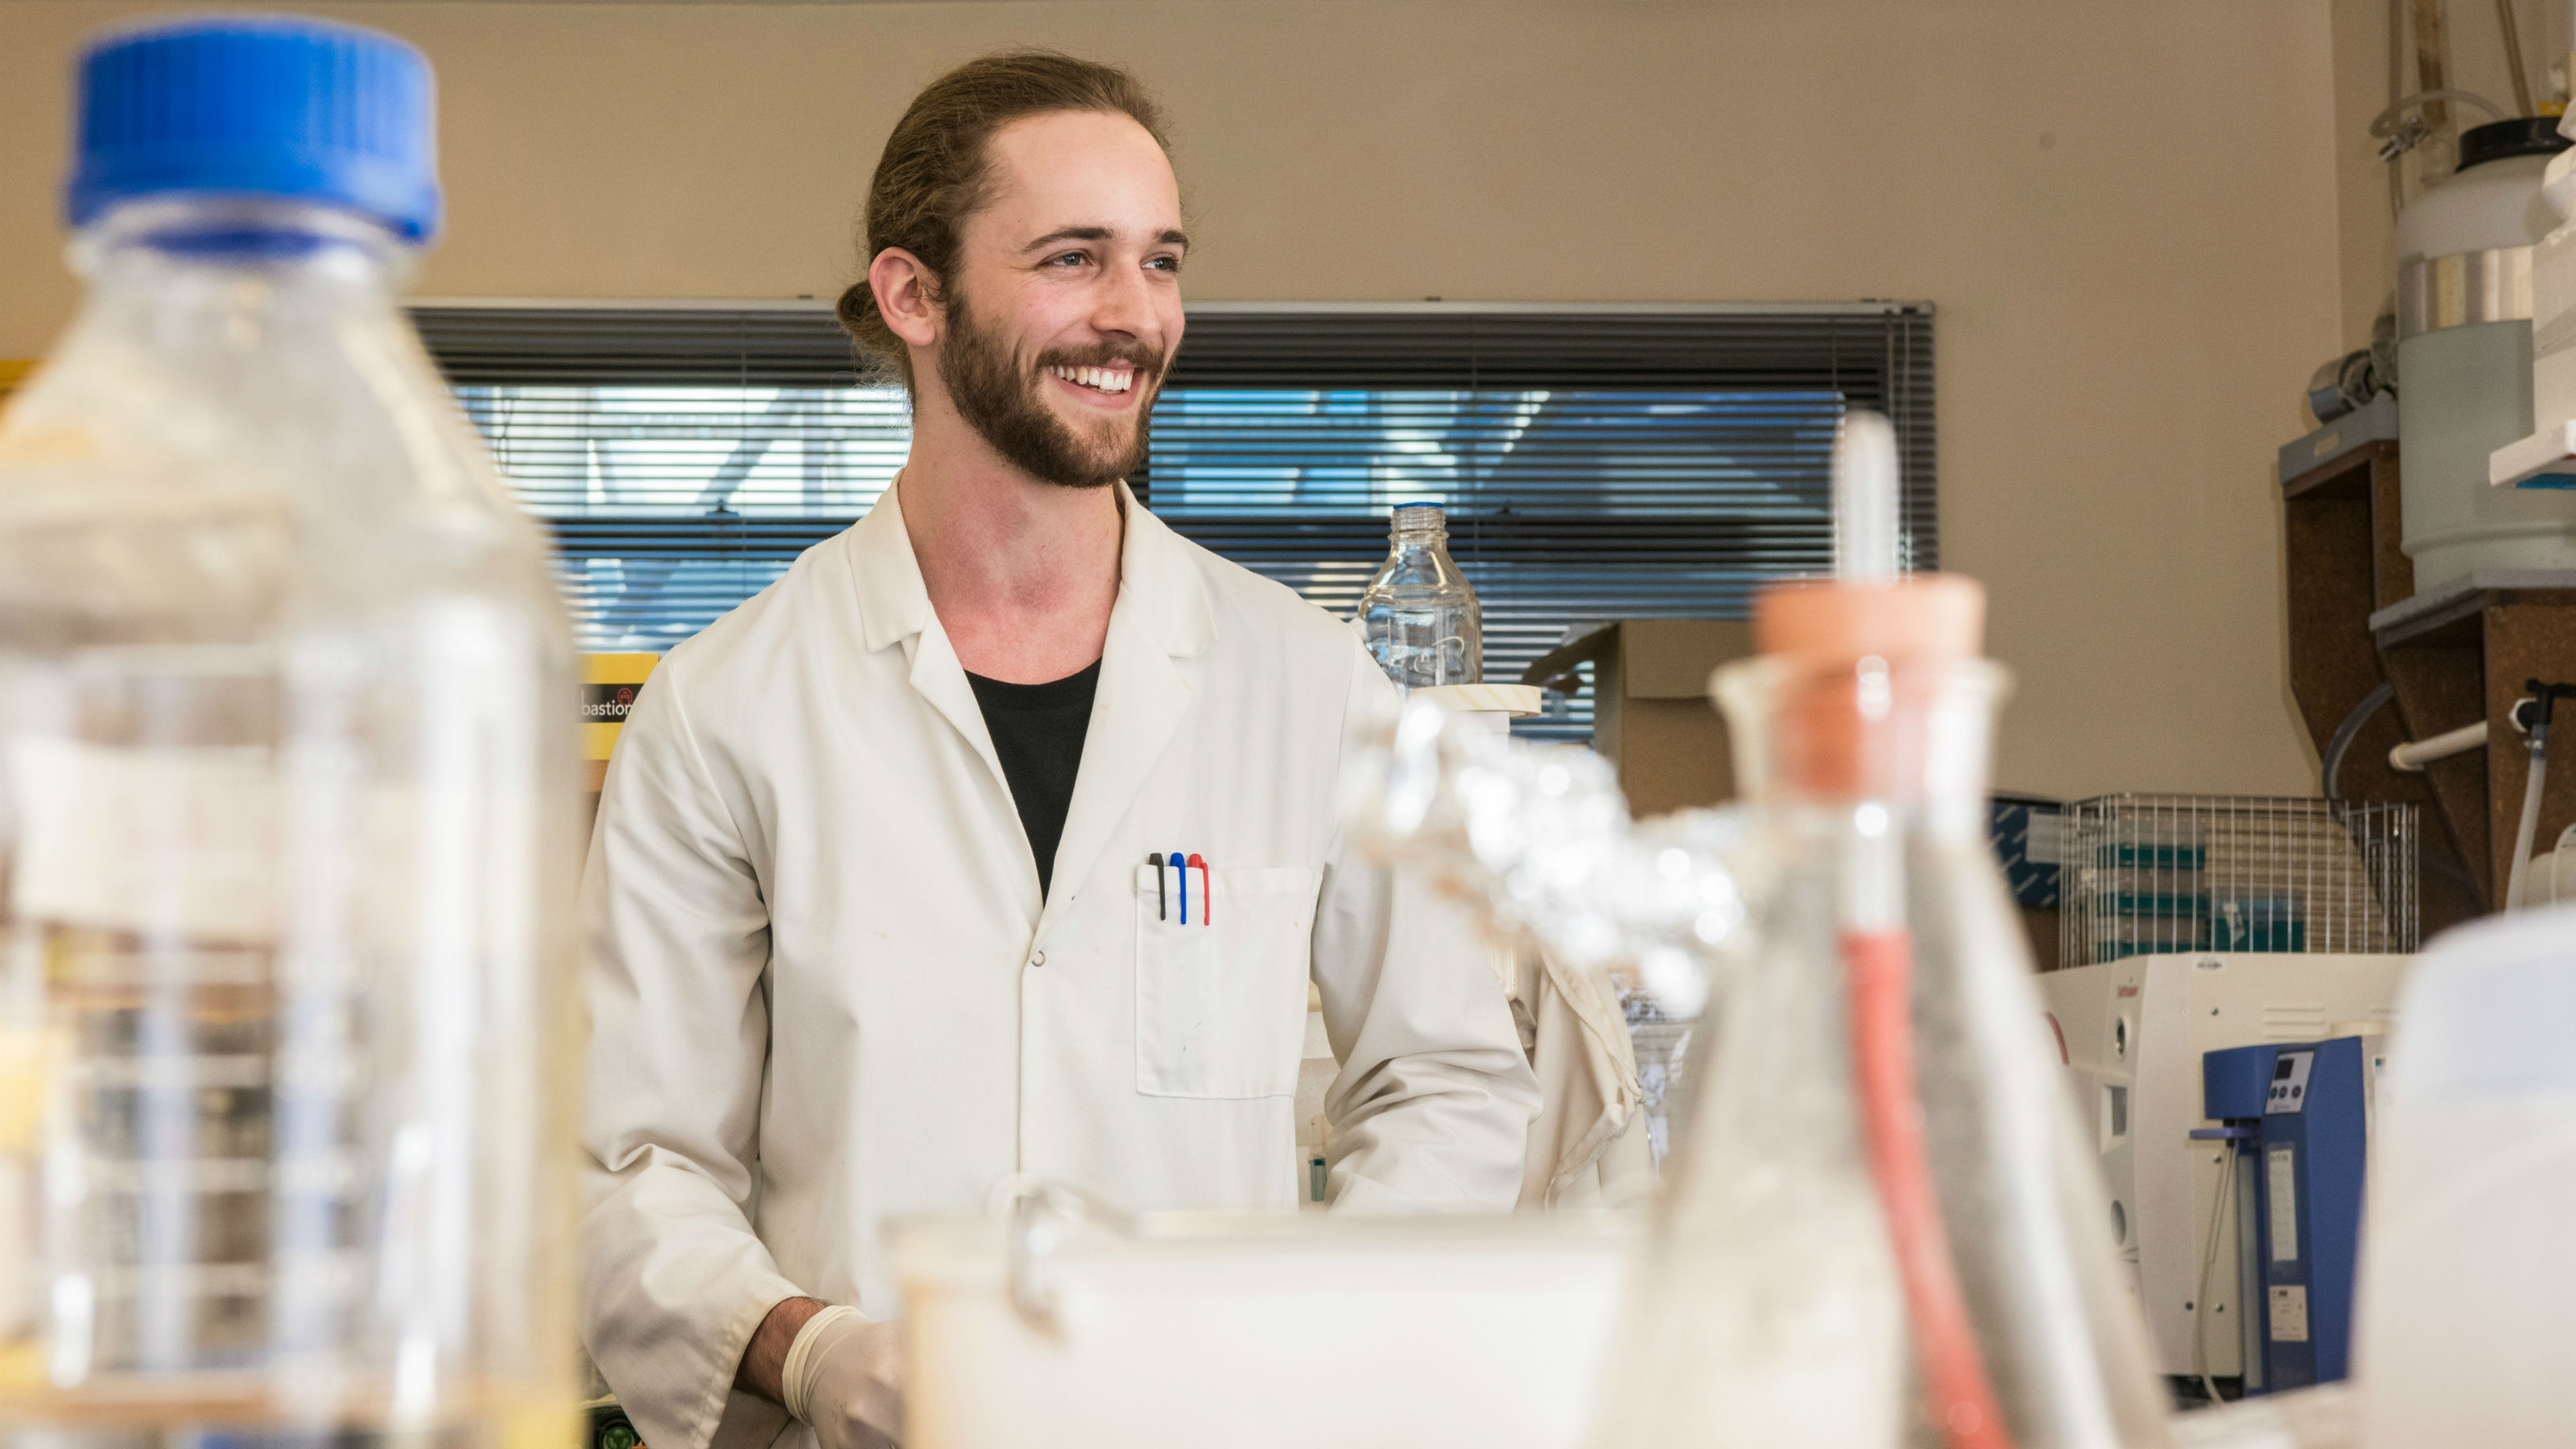 A student wearing a white lab coat stands smiling over science eqiupment in a laboratory.